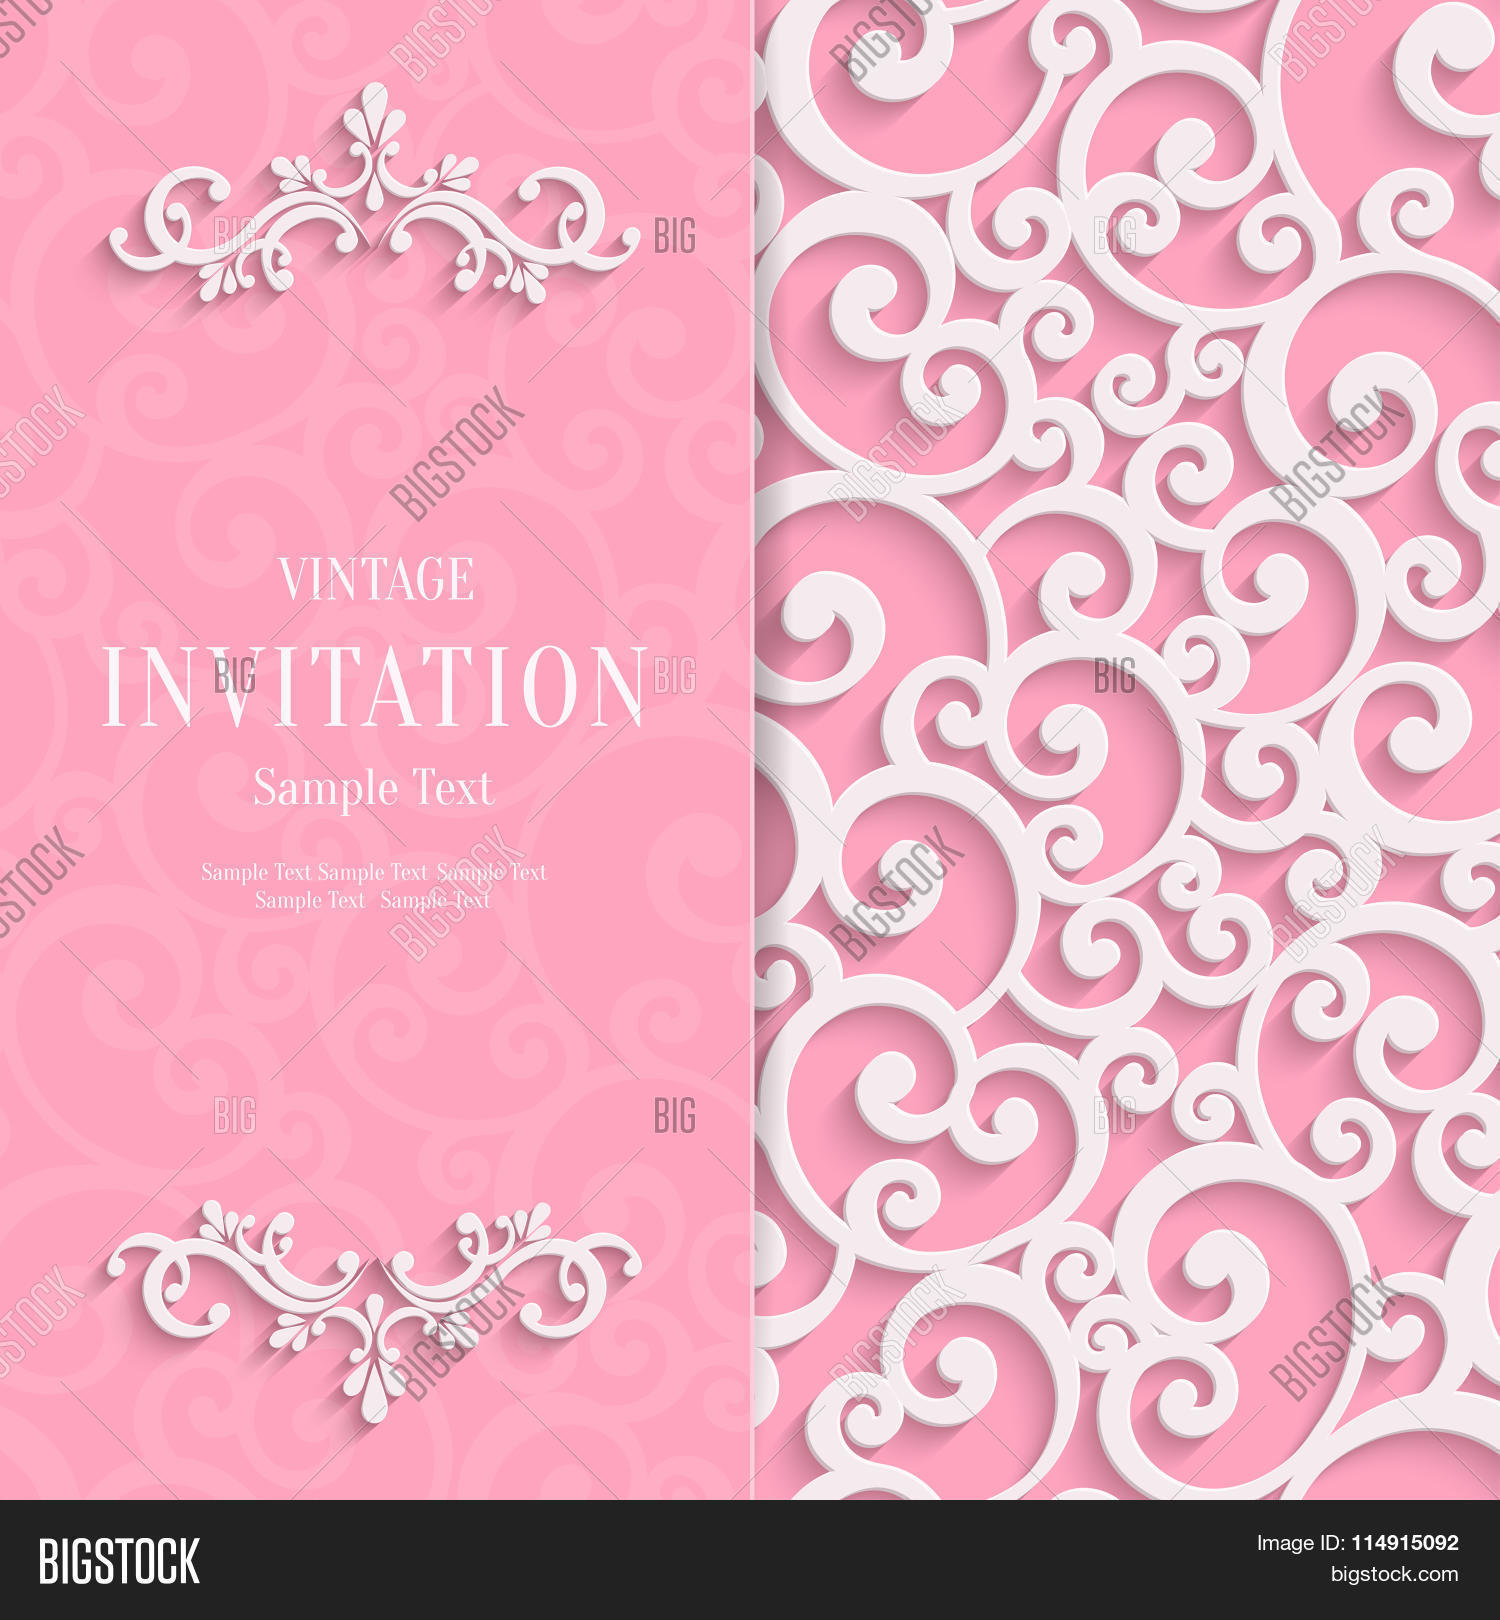 Vector pink 3d vector photo free trial bigstock vector pink 3d vintage invitation card with swirl damask pattern stopboris Images